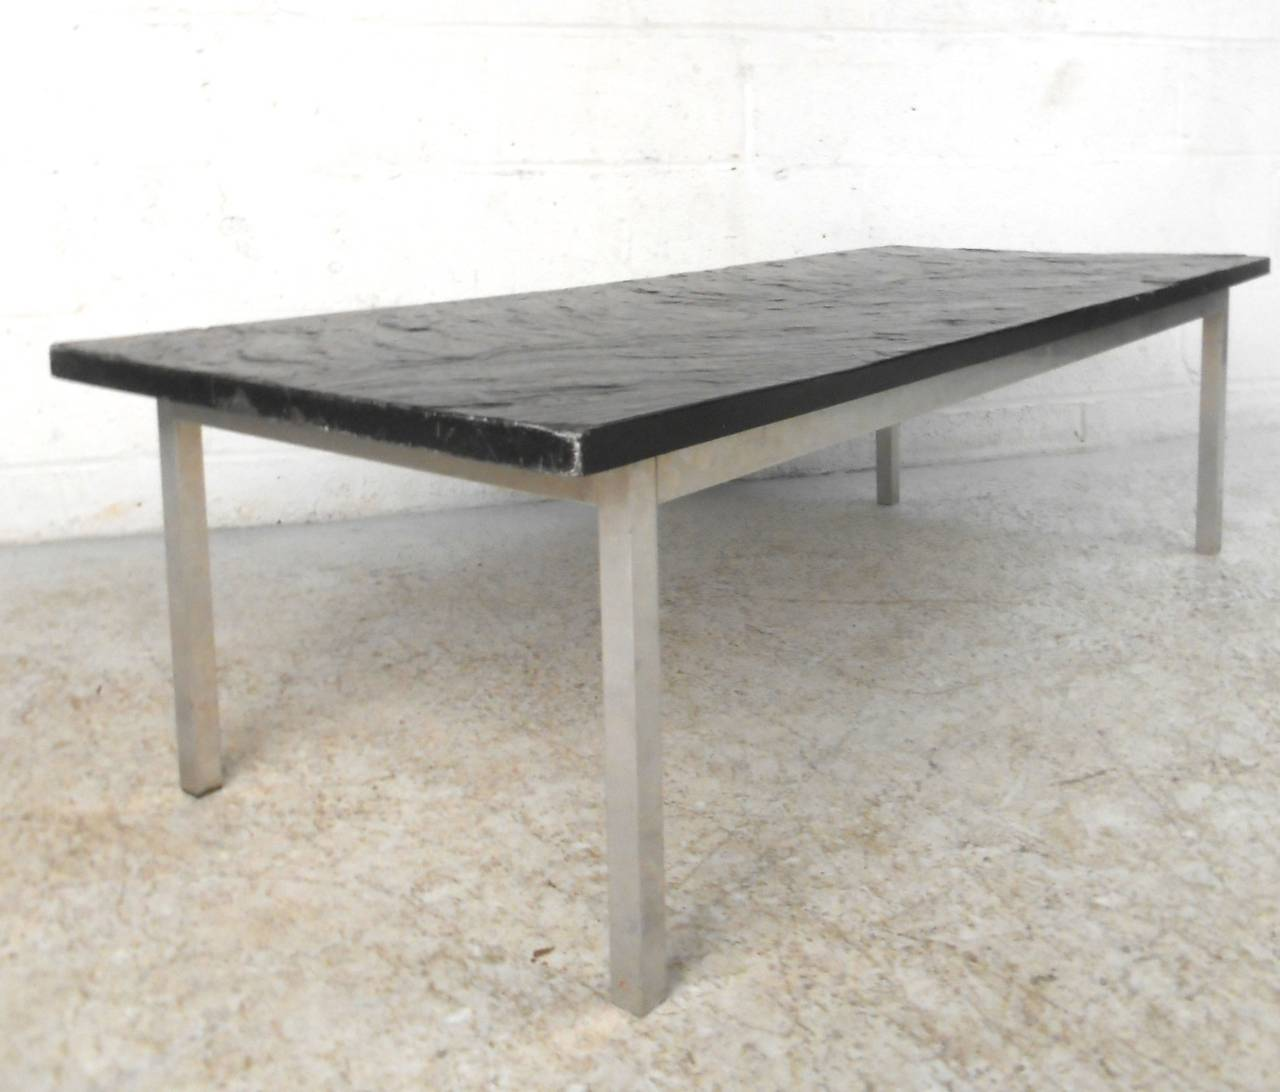 Mid century modern poul kj rholm style slate top coffee table for sale at 1stdibs Slate top coffee tables